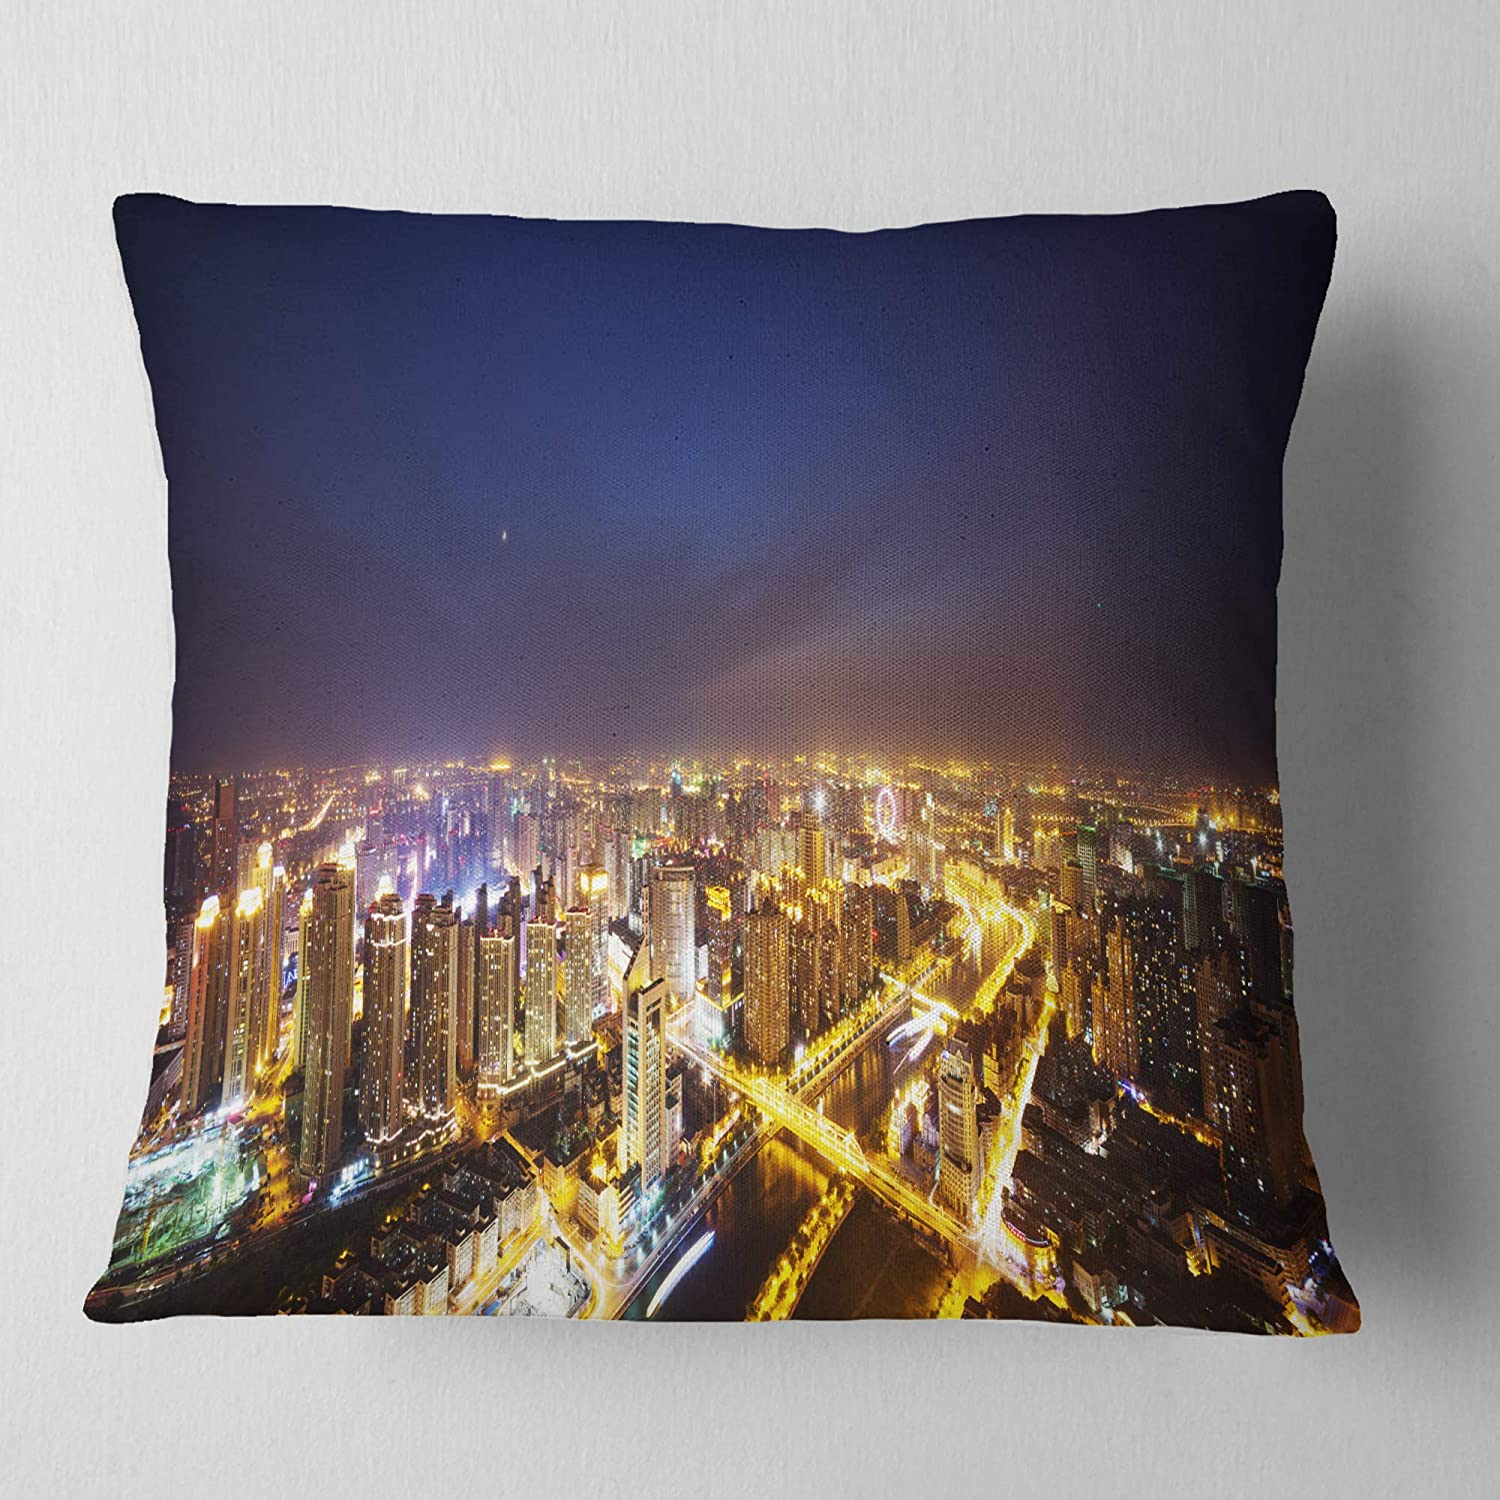 in Designart CU10997-26-26 Downtown Nighttime Panorama Cityscape Cushion Cover for Living Room x 26 in Sofa Throw Pillow 26 in Insert Printed On Both Side